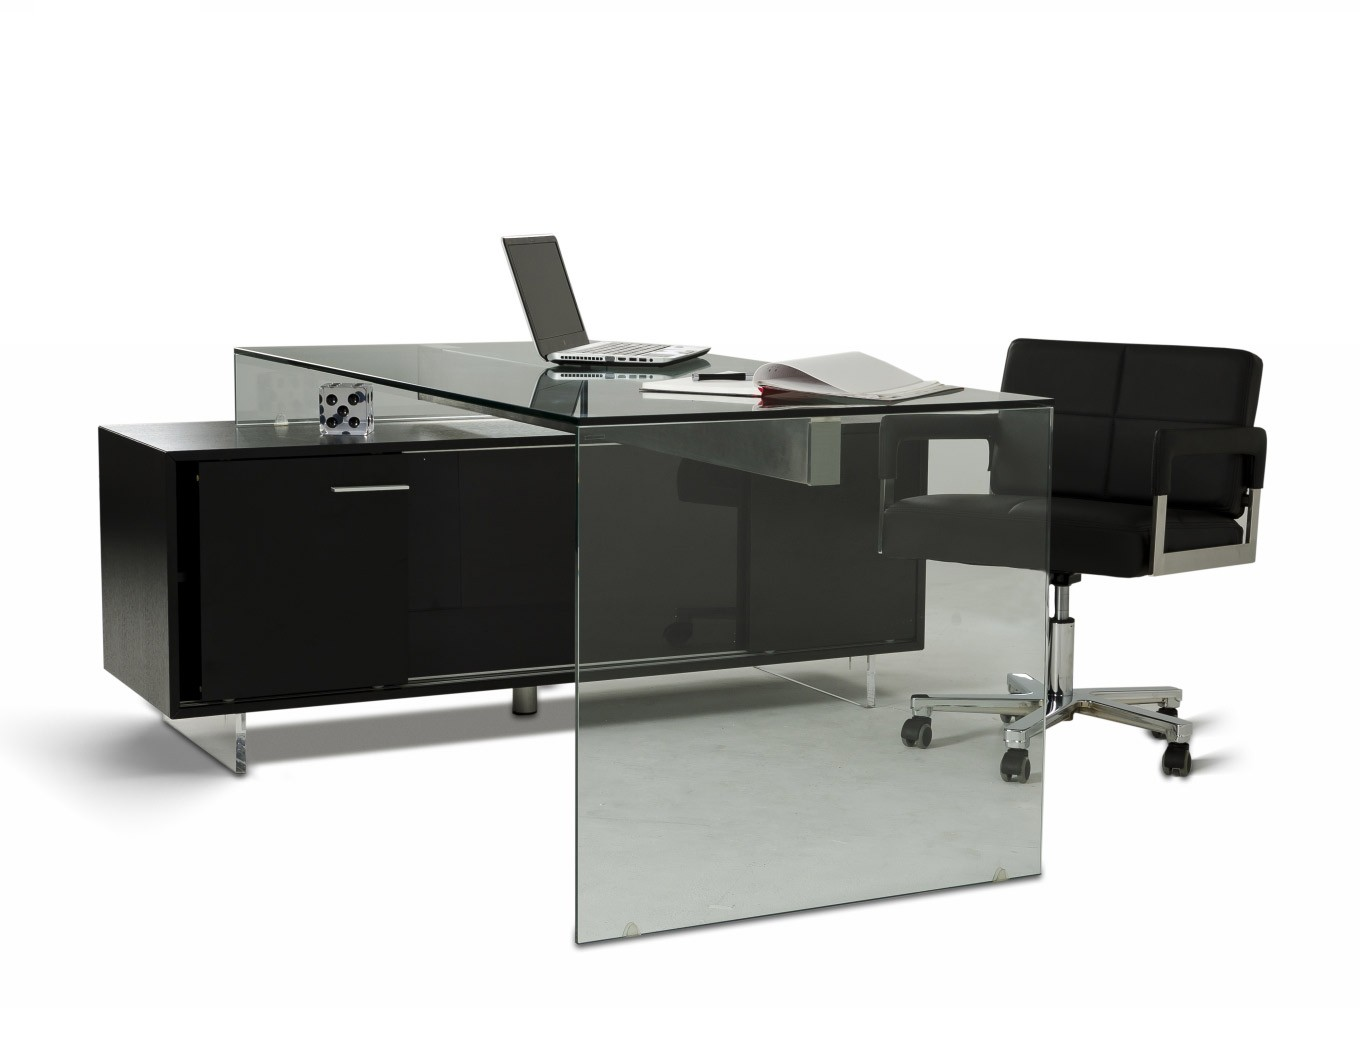 modern office desks archives page of la furniture blog 9483 2 1 jpg